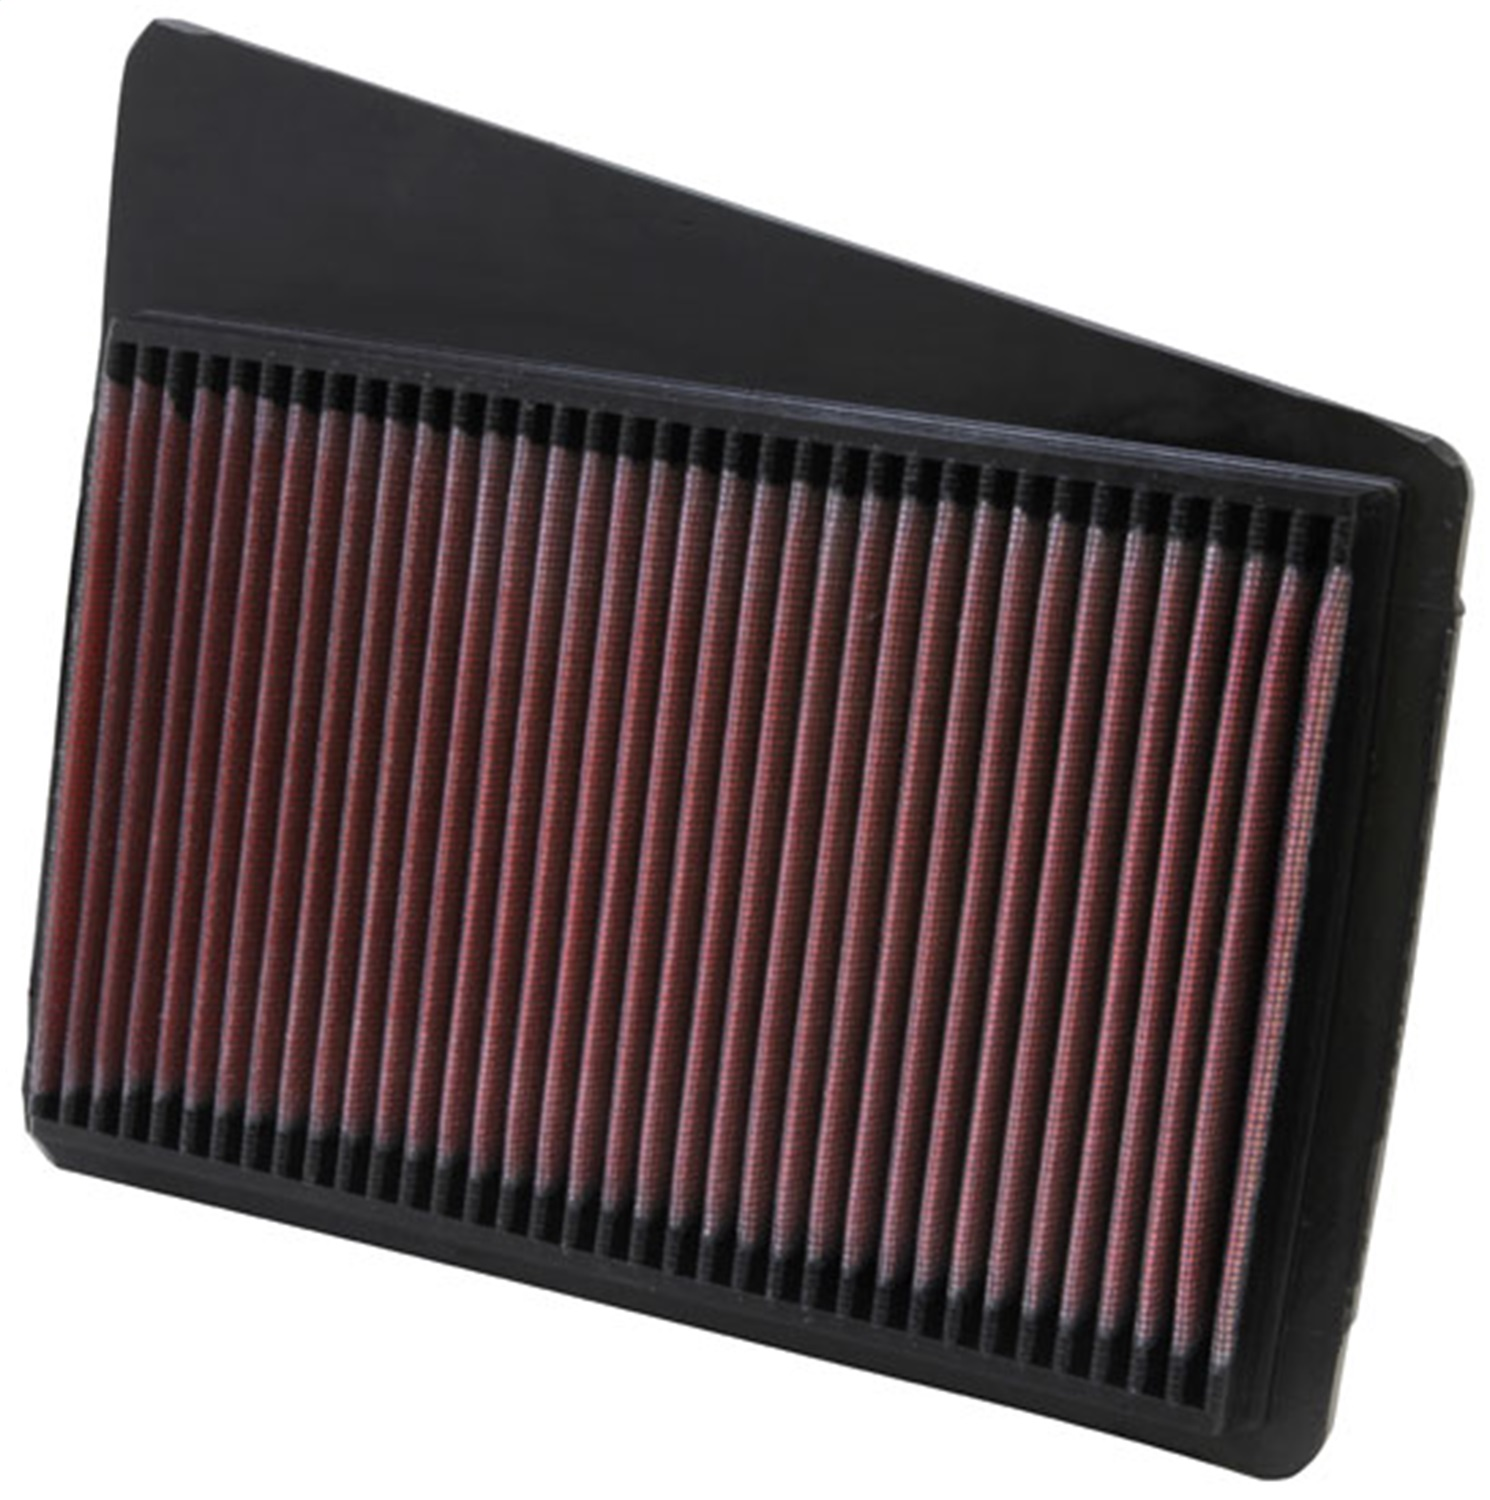 K&N Filters 33-2089 Air Filter Fits 91-98 Legend TL 33-2089